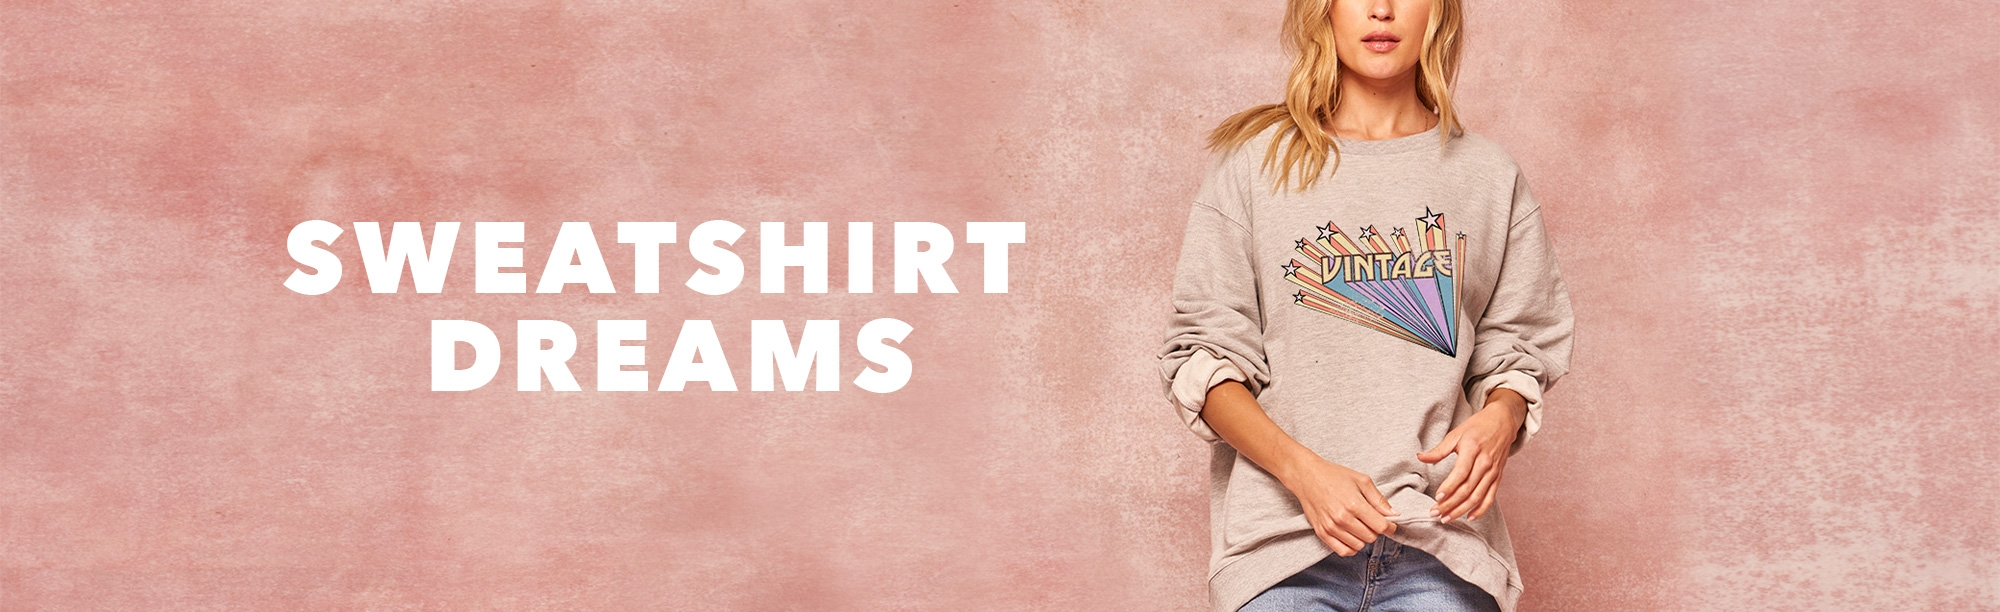 Sweatshirt Dreams